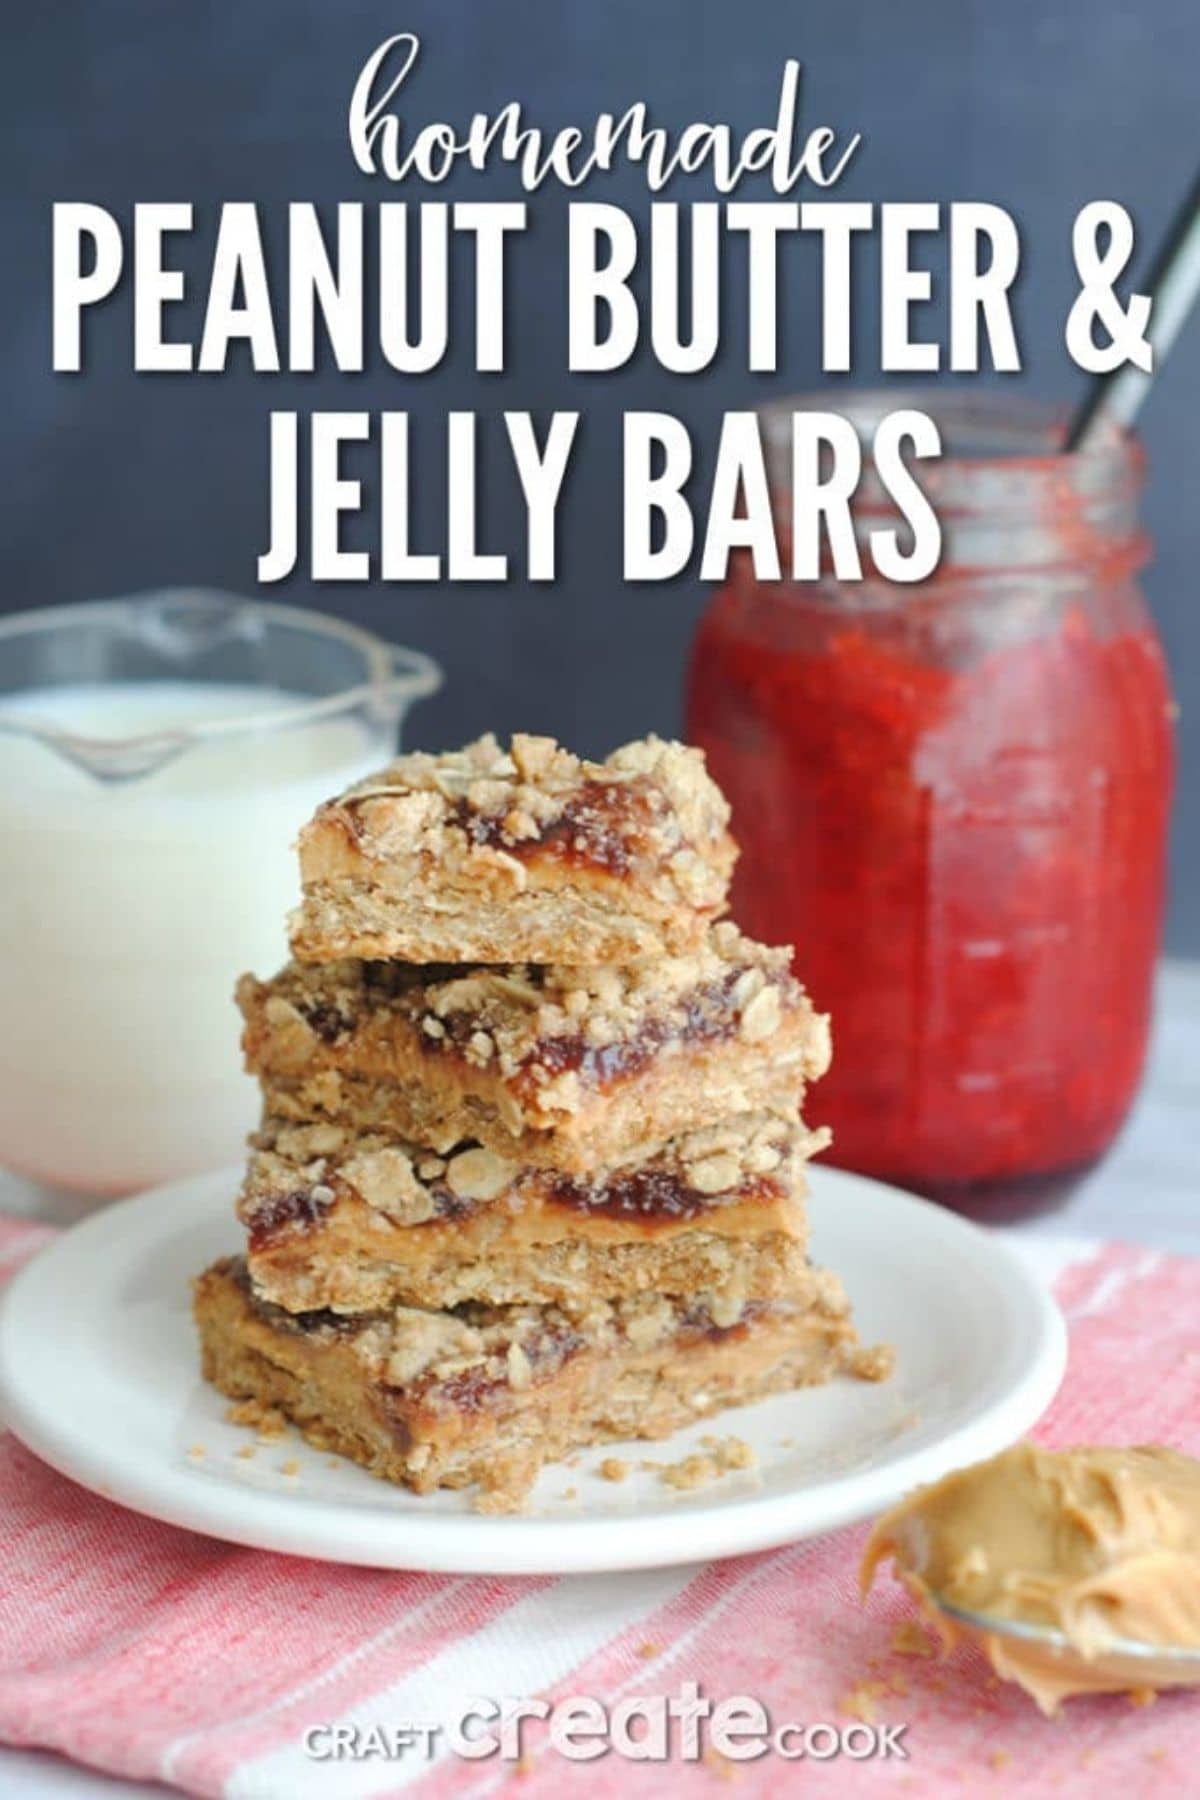 Peanut butter & jelly bars stacked on white plate